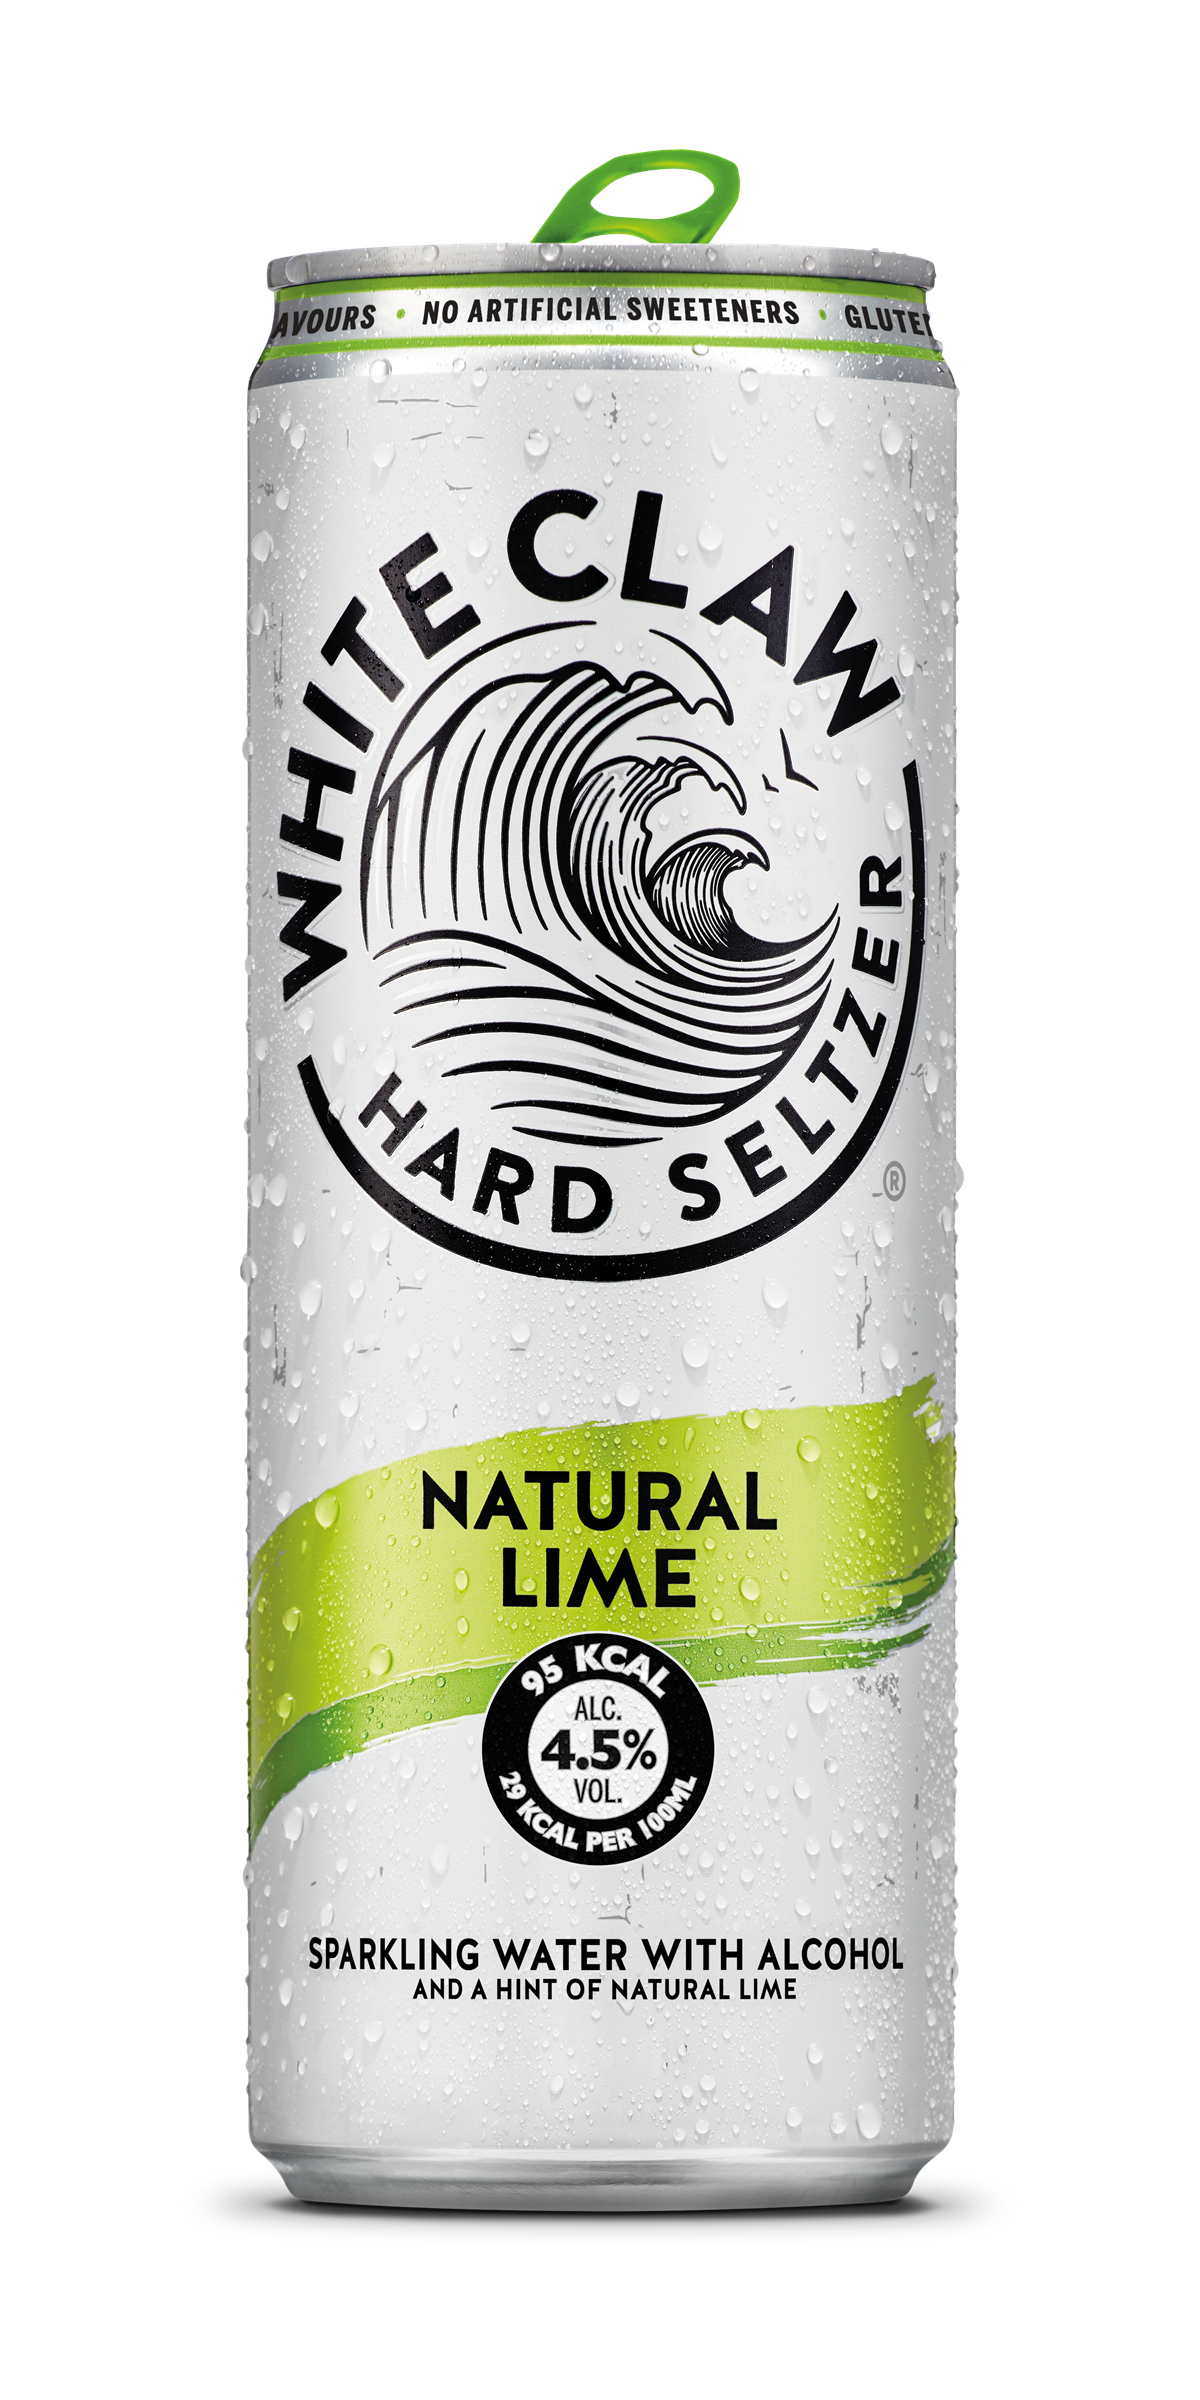 White Claw_Natural Lime